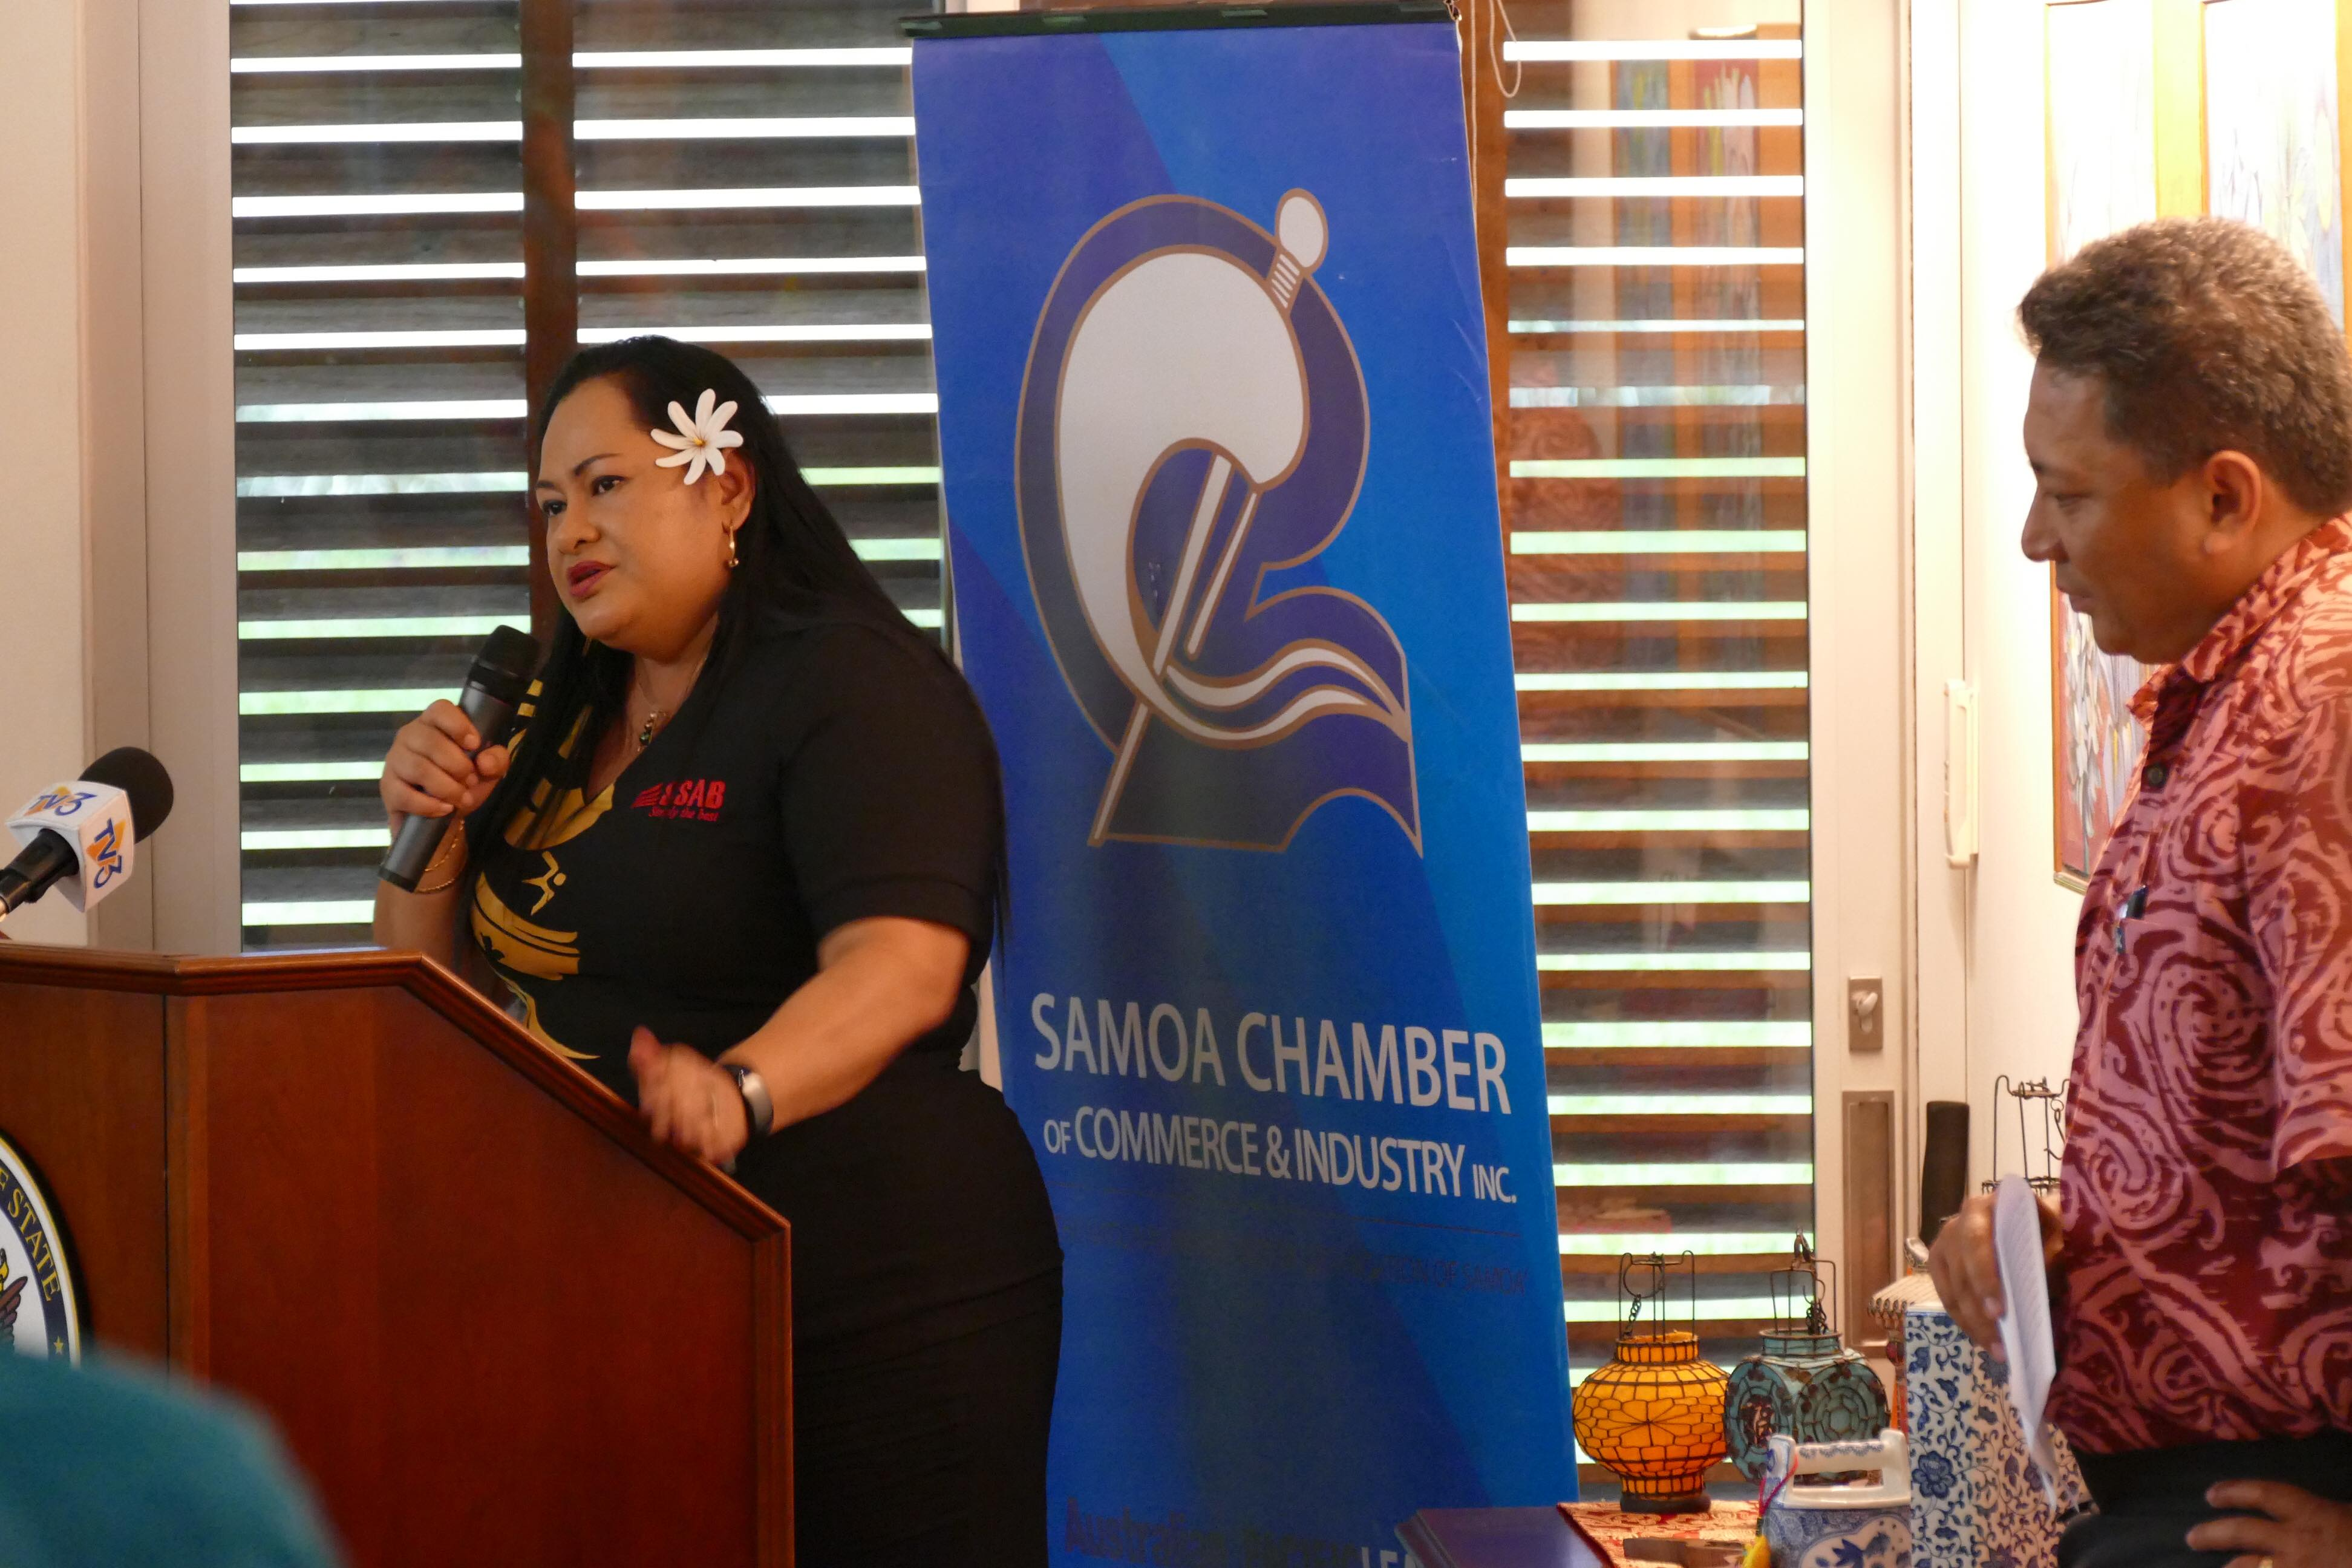 Tofilau Fiti Leung Wai giving the key note address of the night. Highlighting the importance a Safe Workplace for a Safer Samoa.